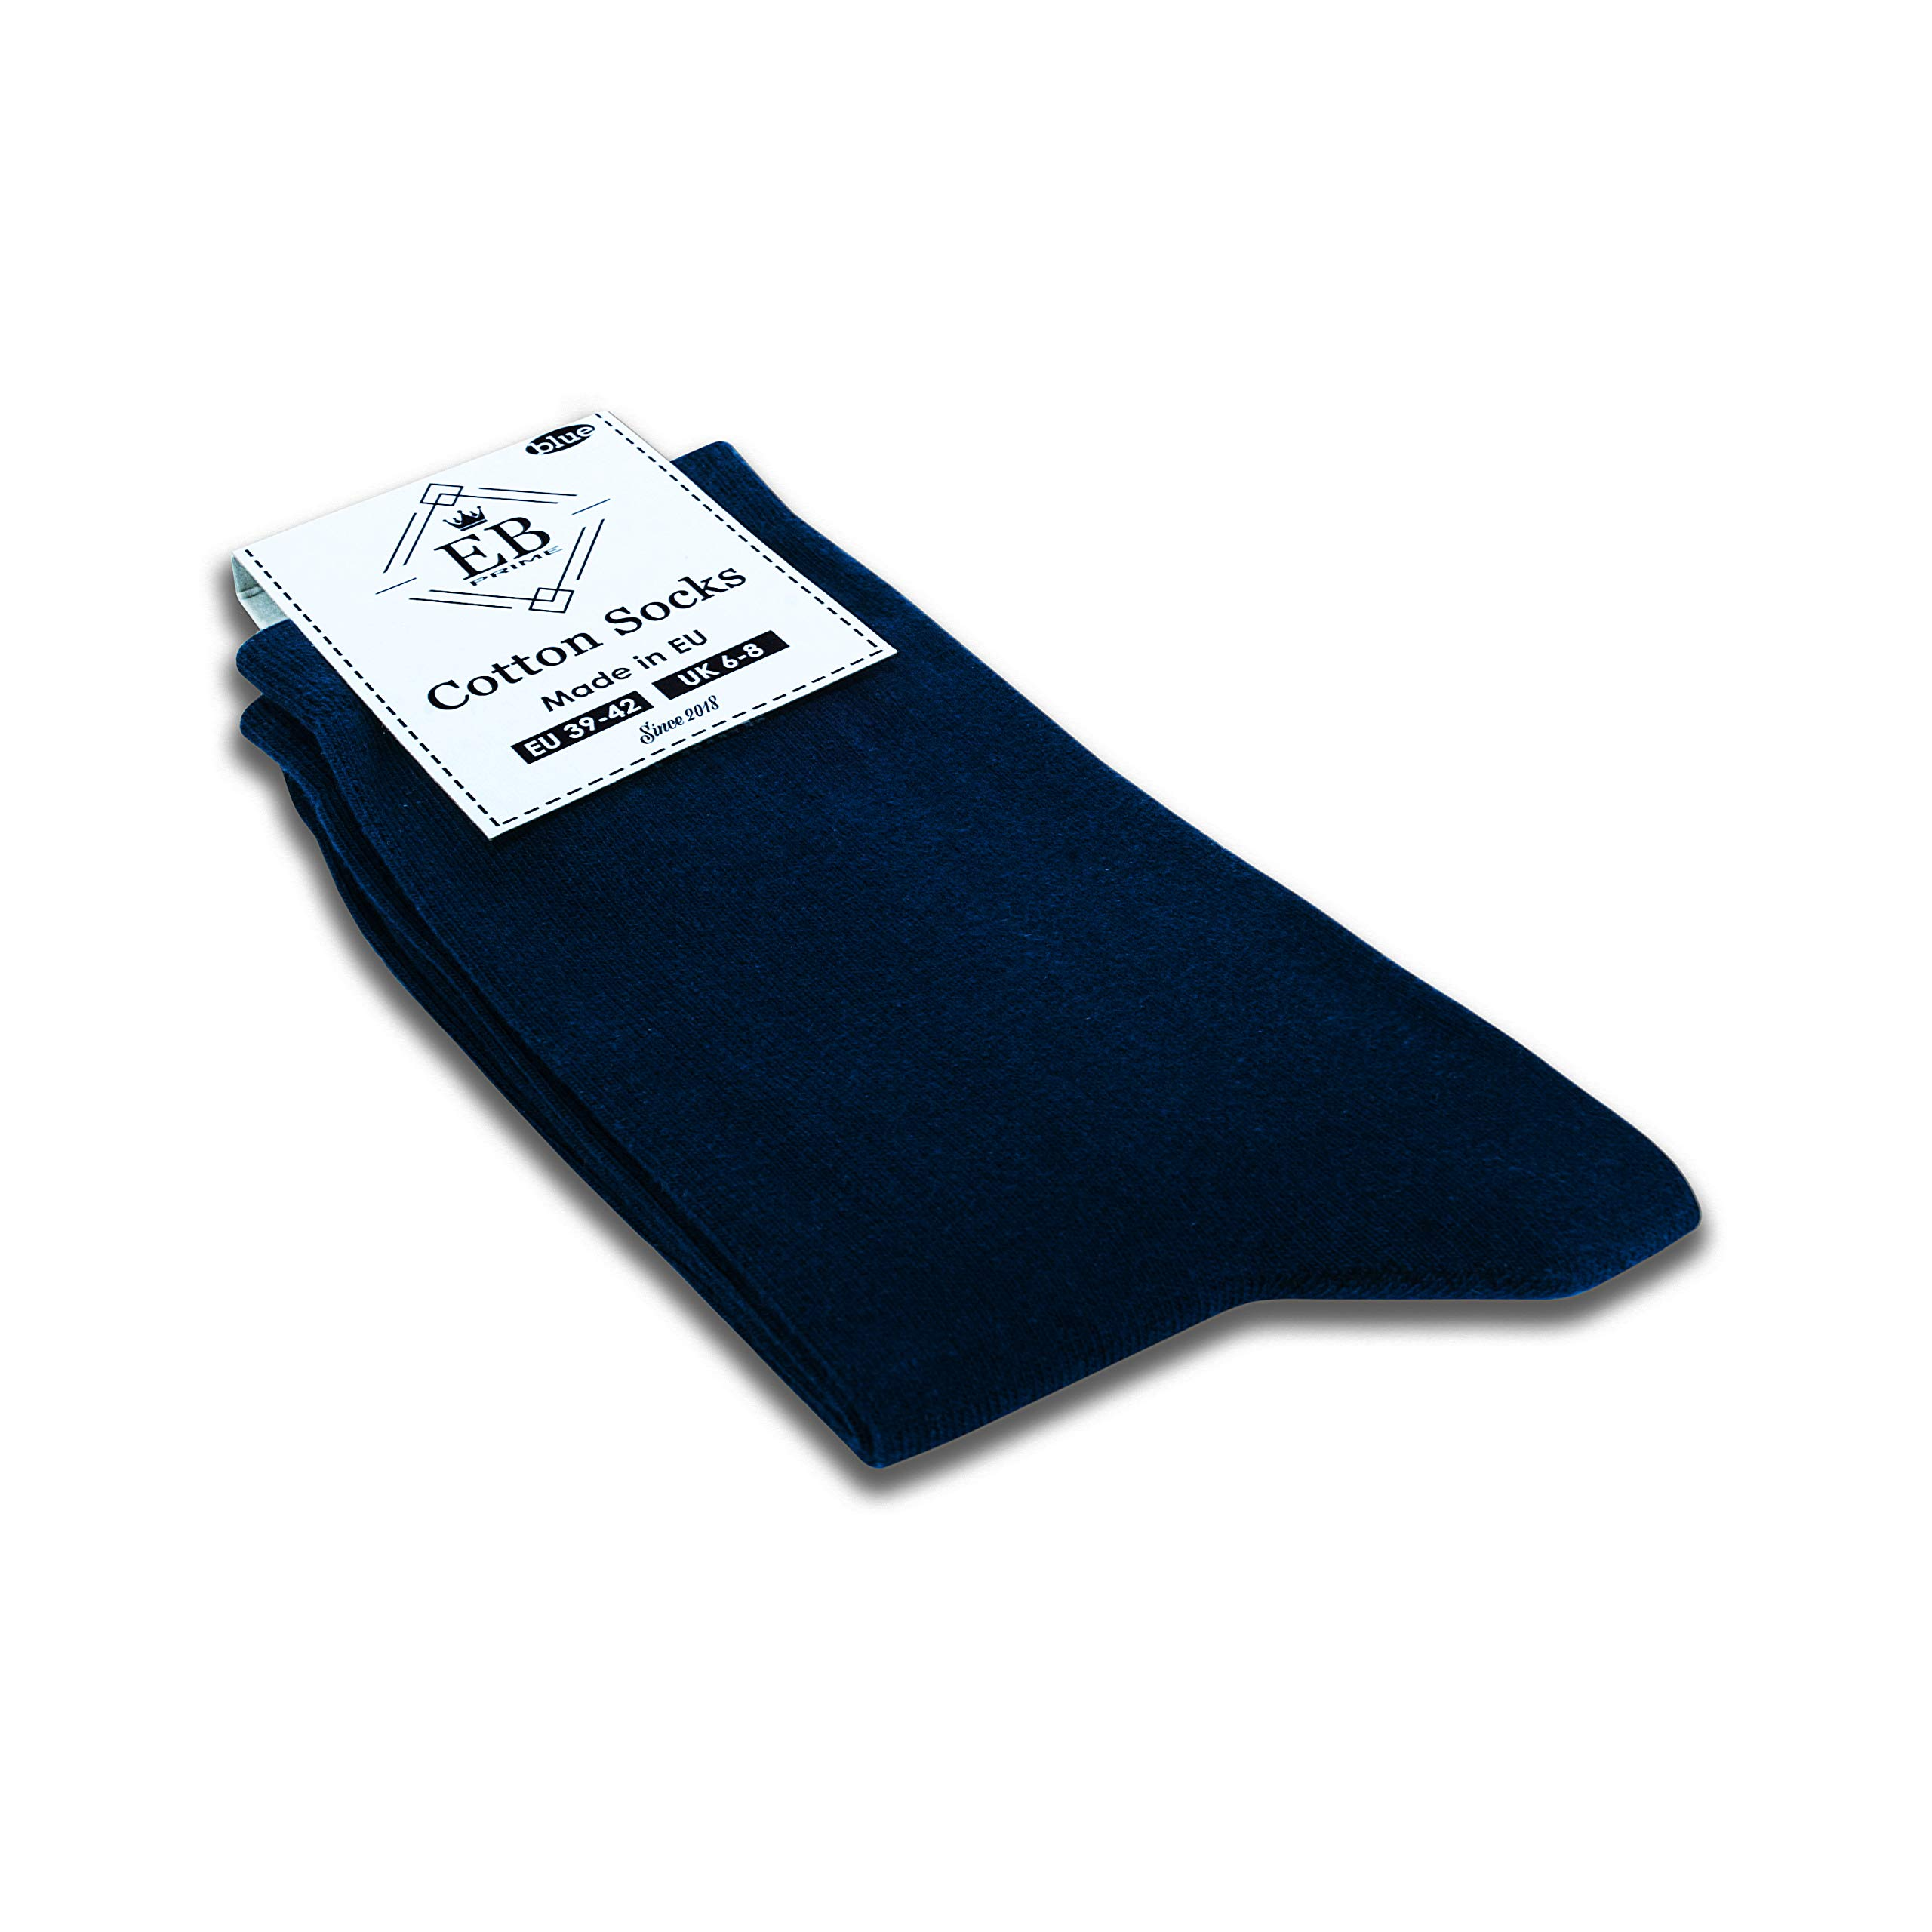 EB Prime Cotton Socks for Men and Women, 6 Pairs, Size UK 6-8, Business Socks, Blue, Classic Socks, Comfortable, Breathable, Best quality for long durability, Made in the EU.